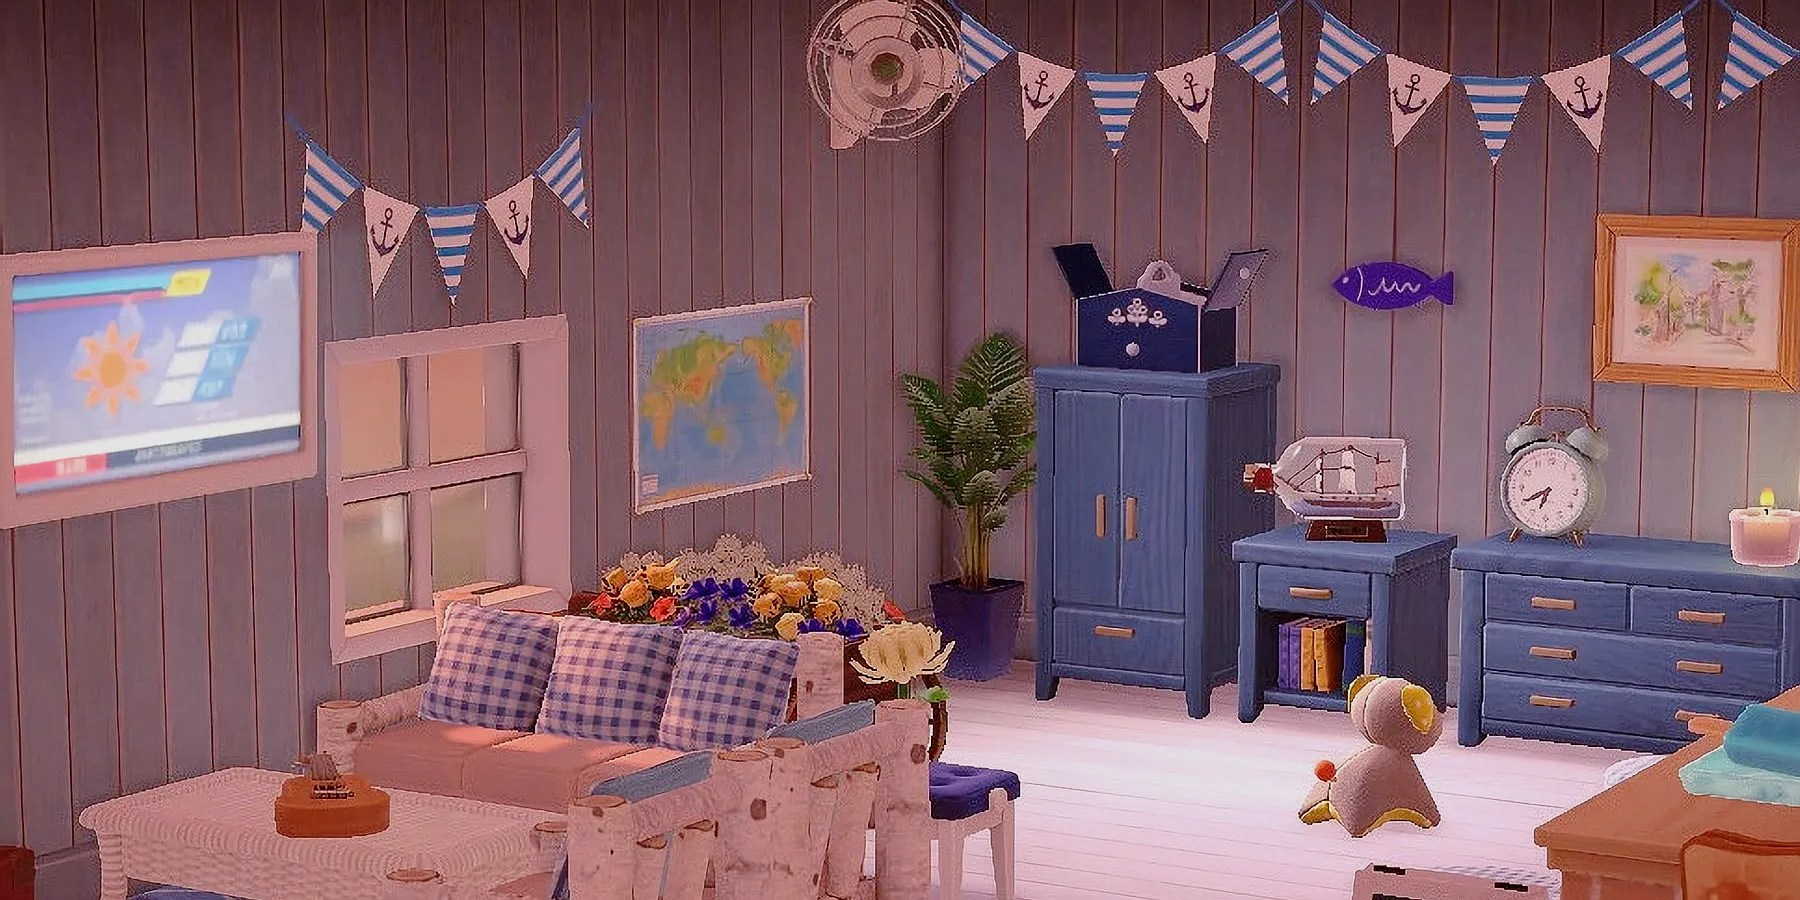 Interior Design Ideas & Tips in Animal Crossing: New Horizons on Animal Crossing Room Ideas New Horizons  id=30663